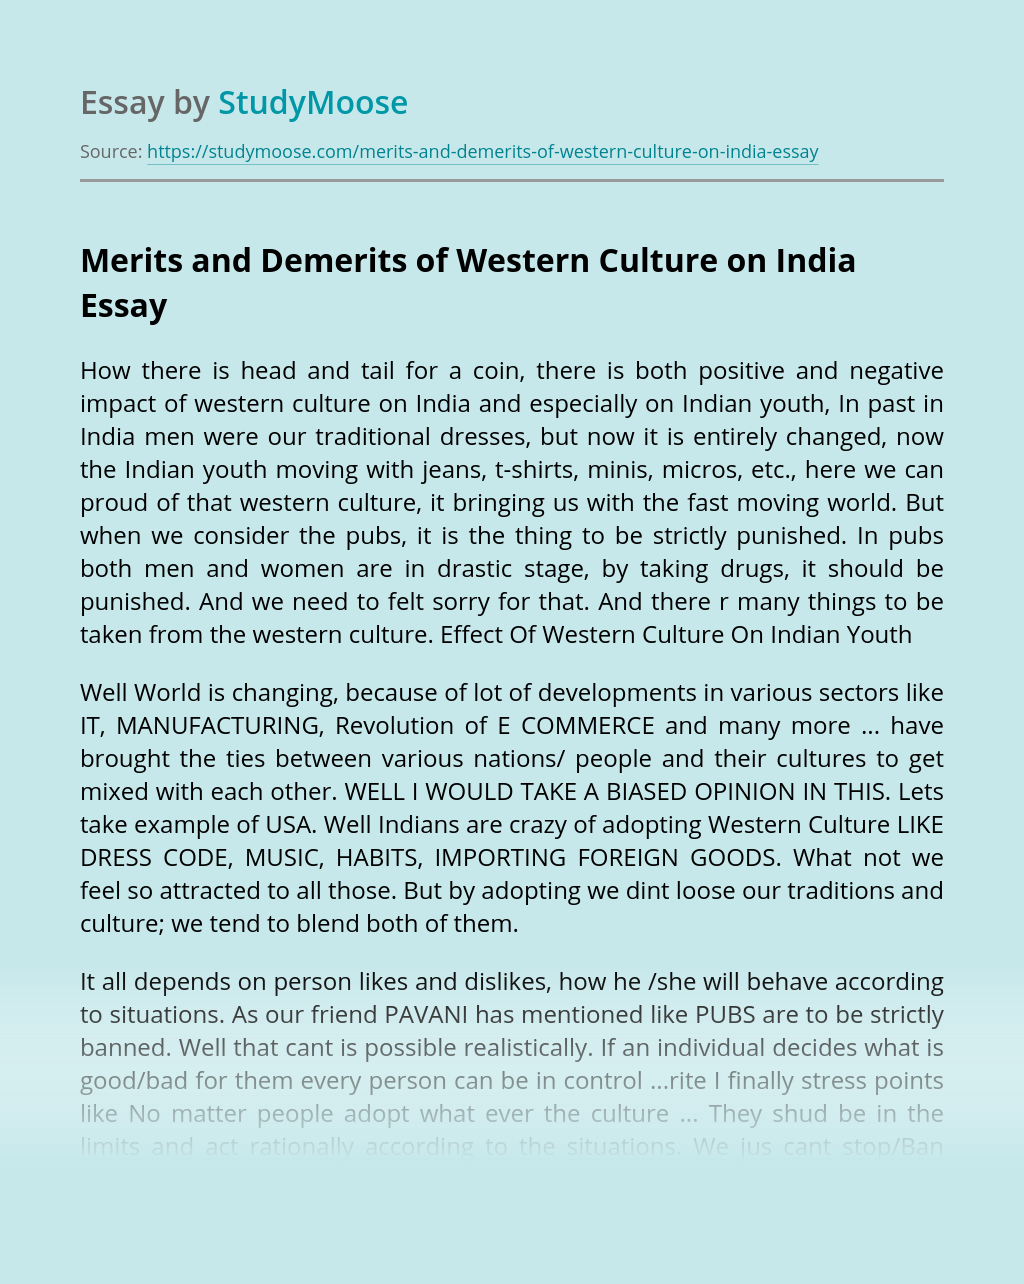 Merits and Demerits of Western Culture on India